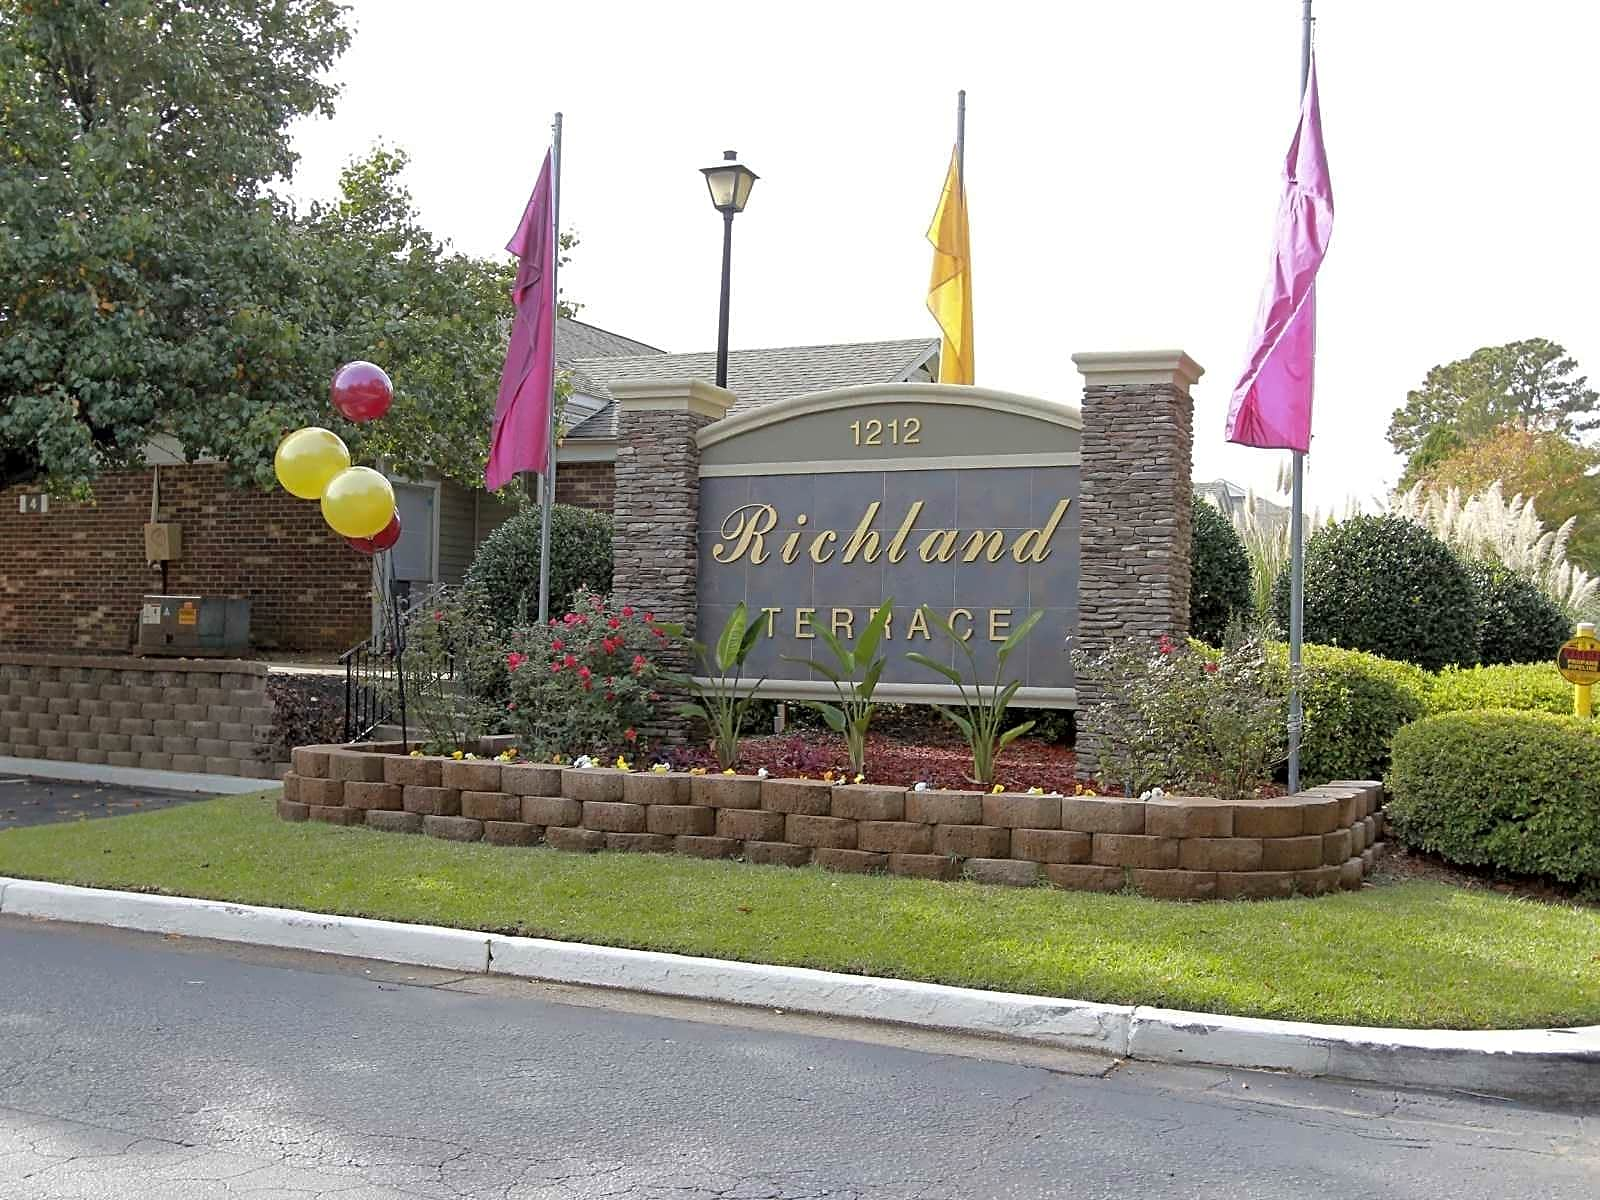 Apartments Near UofSC Richland Terrace for University of South Carolina Students in Columbia, SC